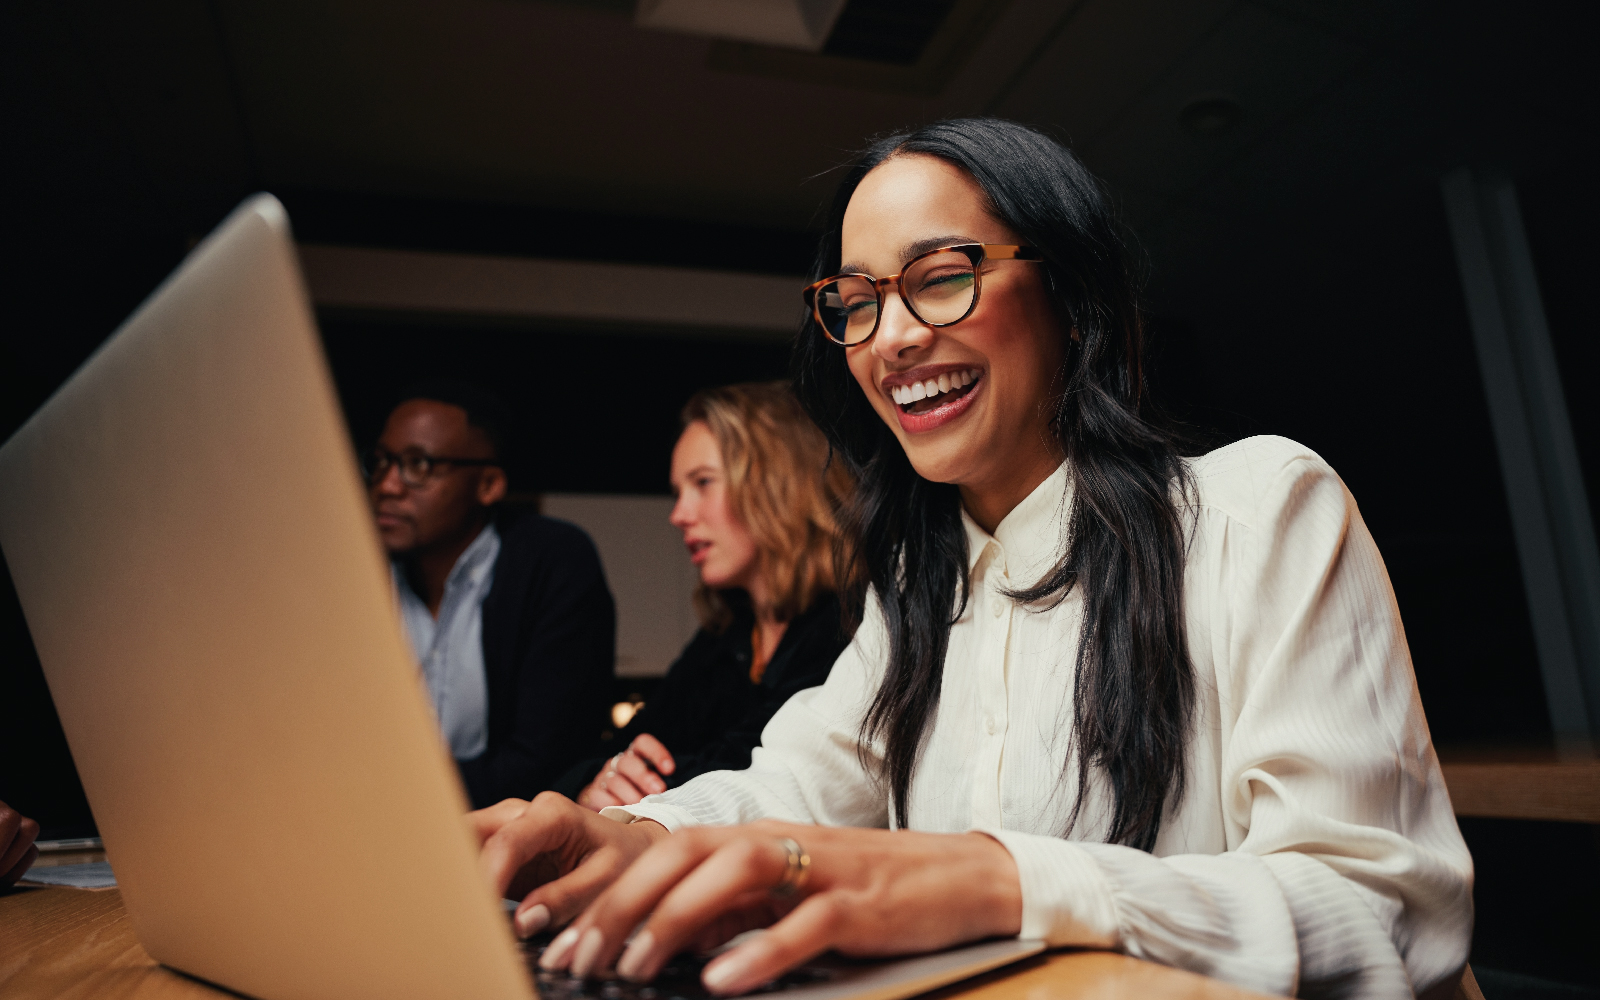 Girl with glasses smiling at laptop